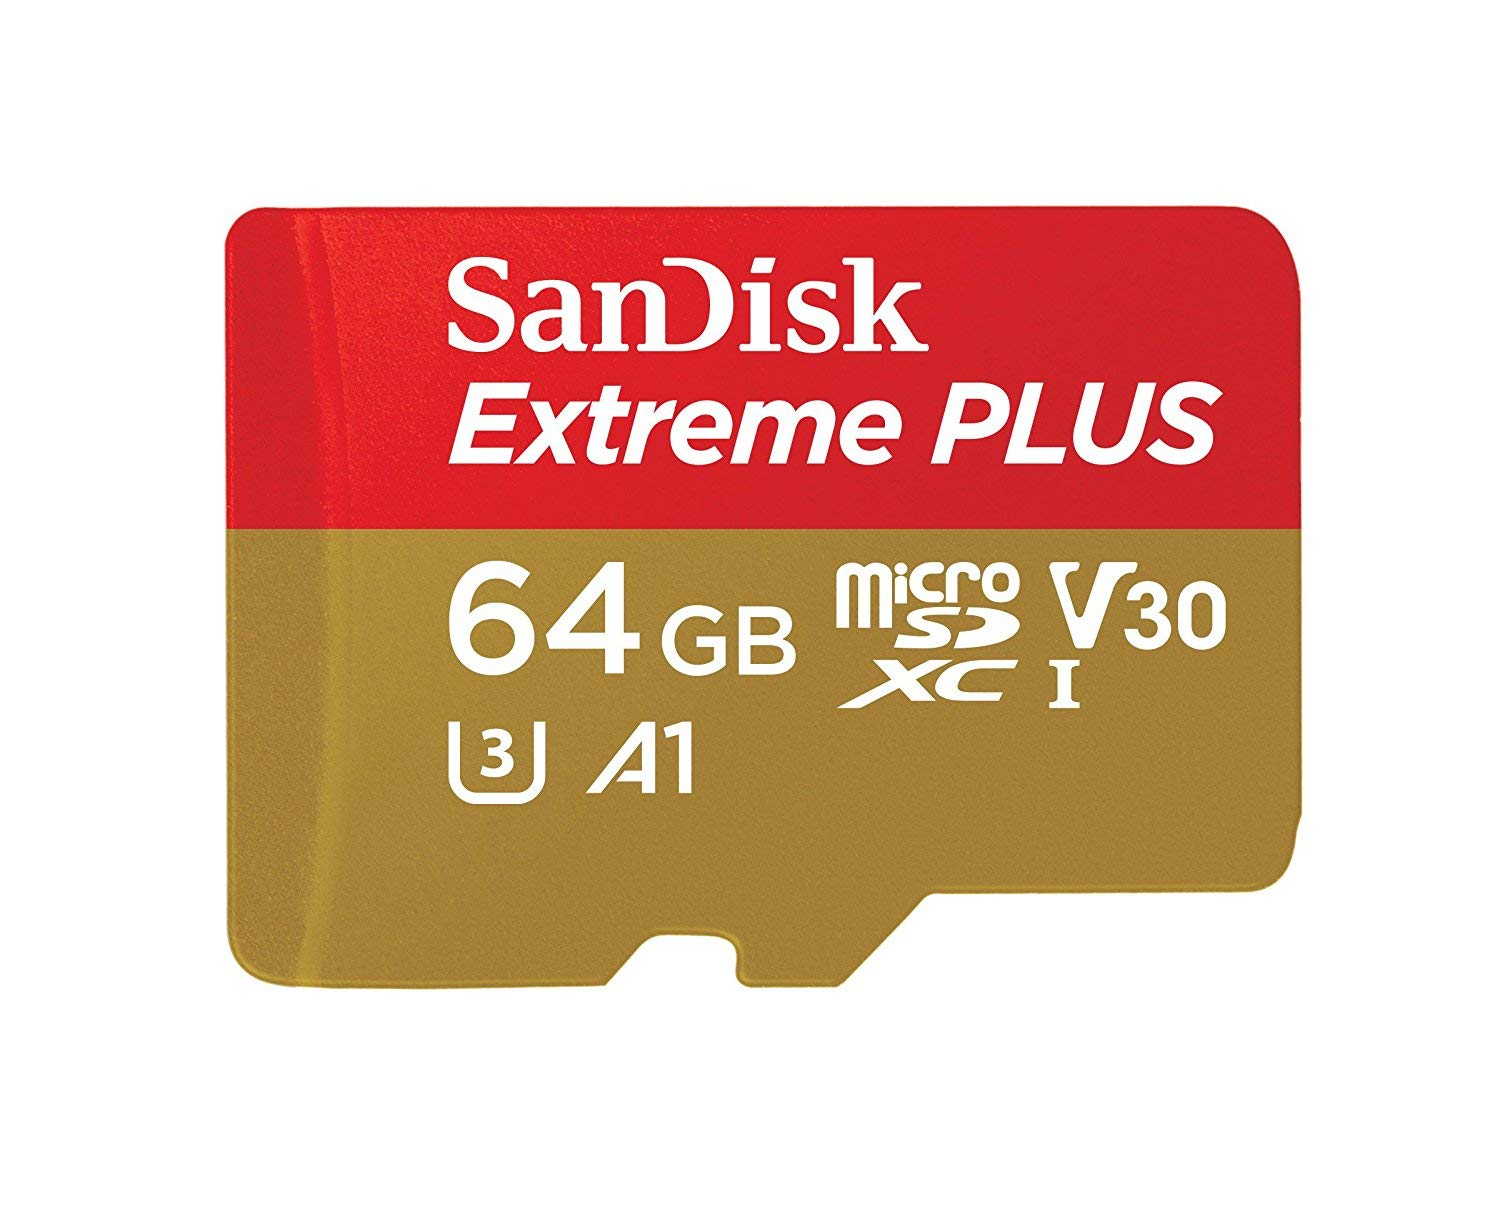 SANDISK EXTREME PLUS MICRO SDXC UHS-I 64GB 100MB/s MEMORY CARD WITH ADAPTER